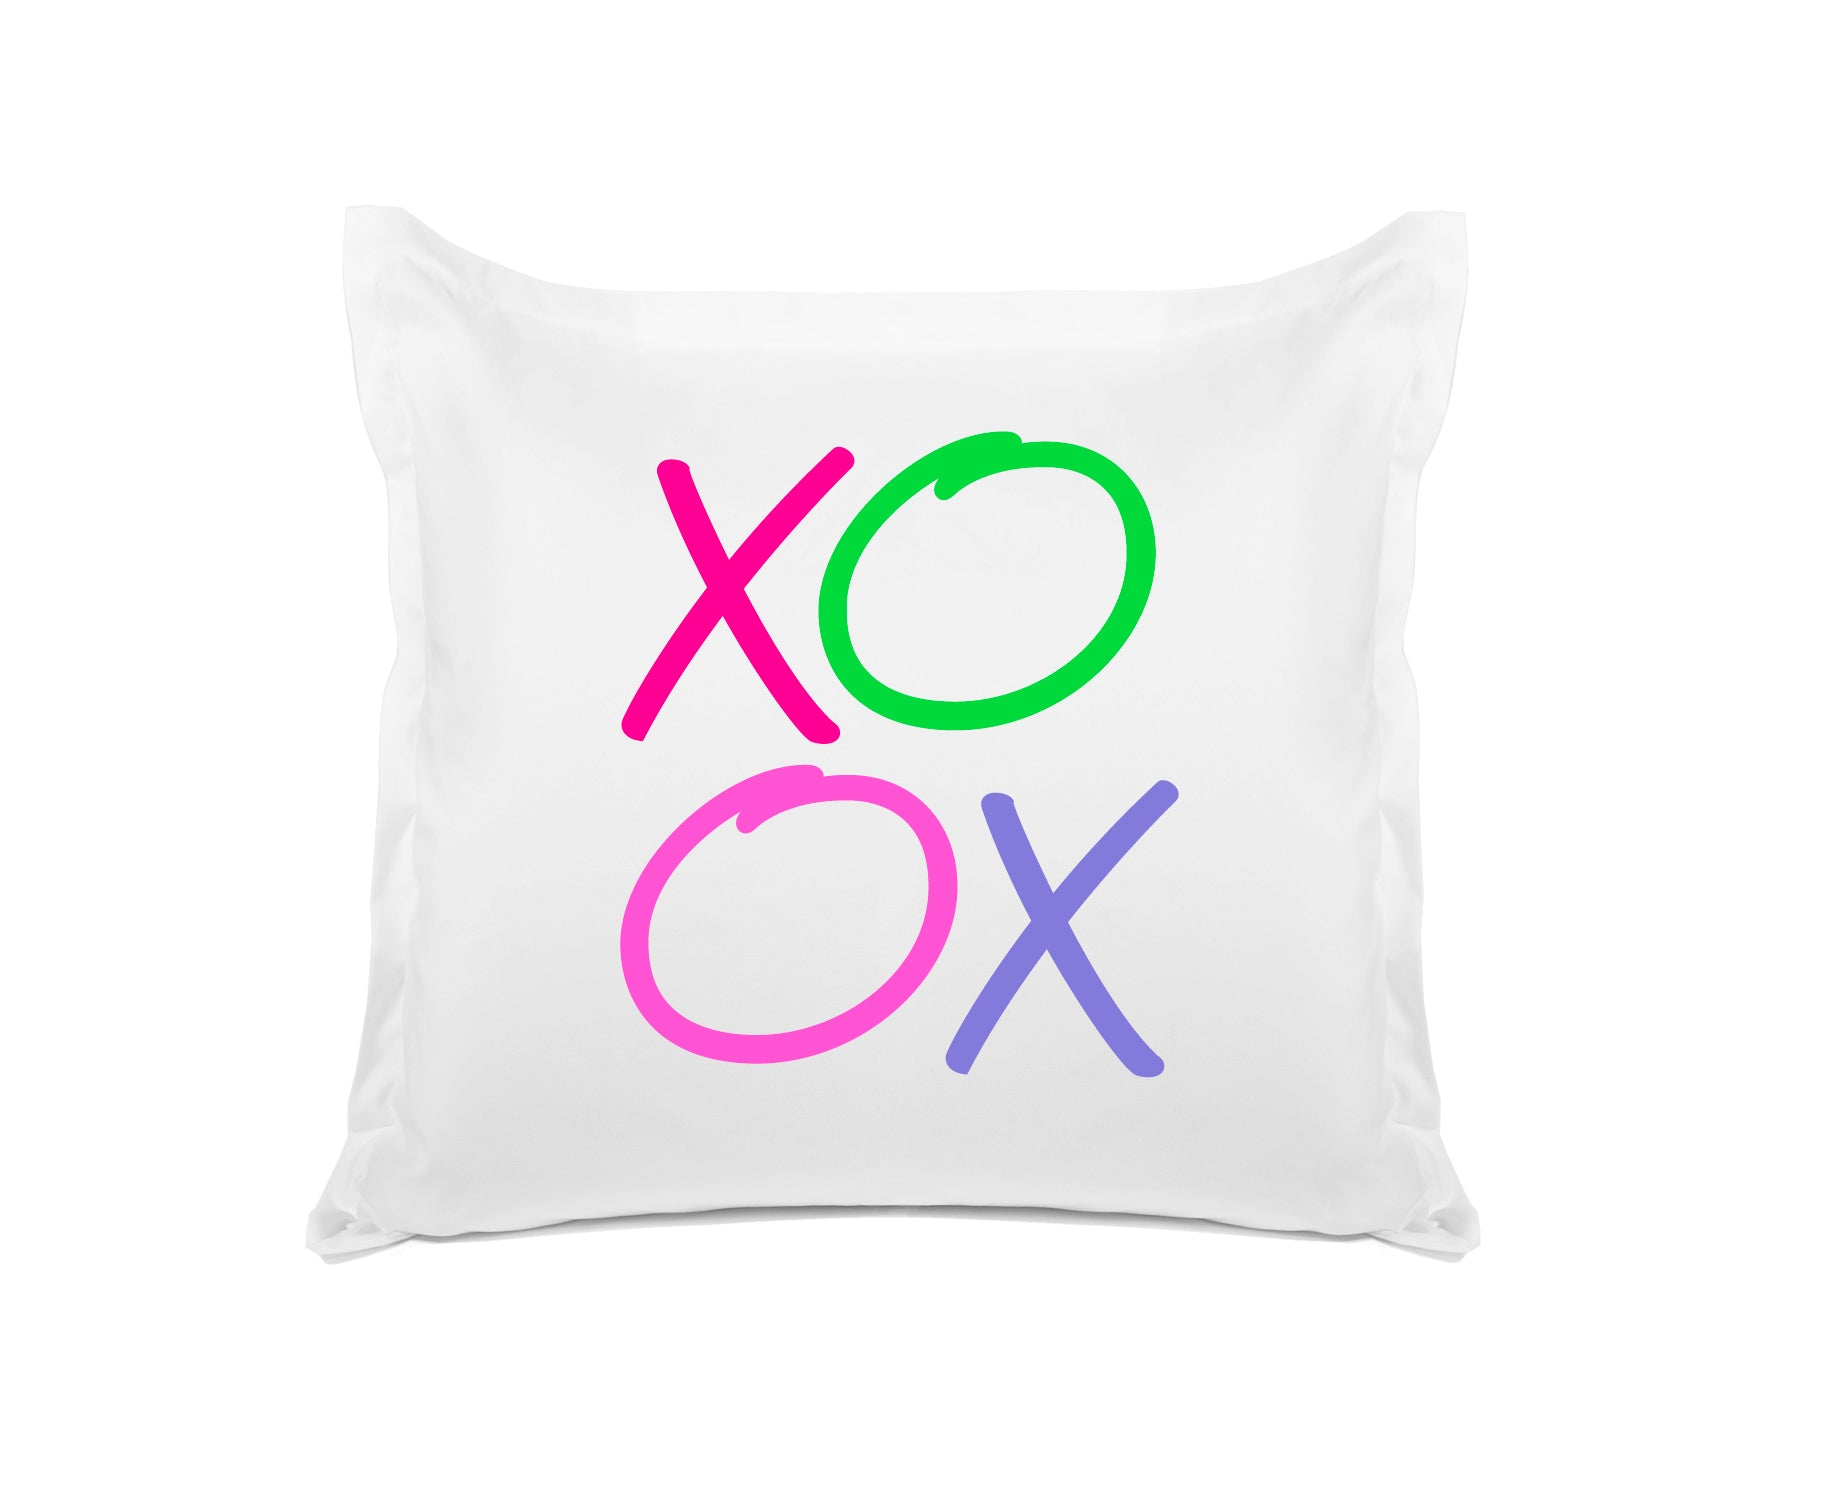 XOXO - Inspirational Quotes Pillowcase Collection-Di Lewis